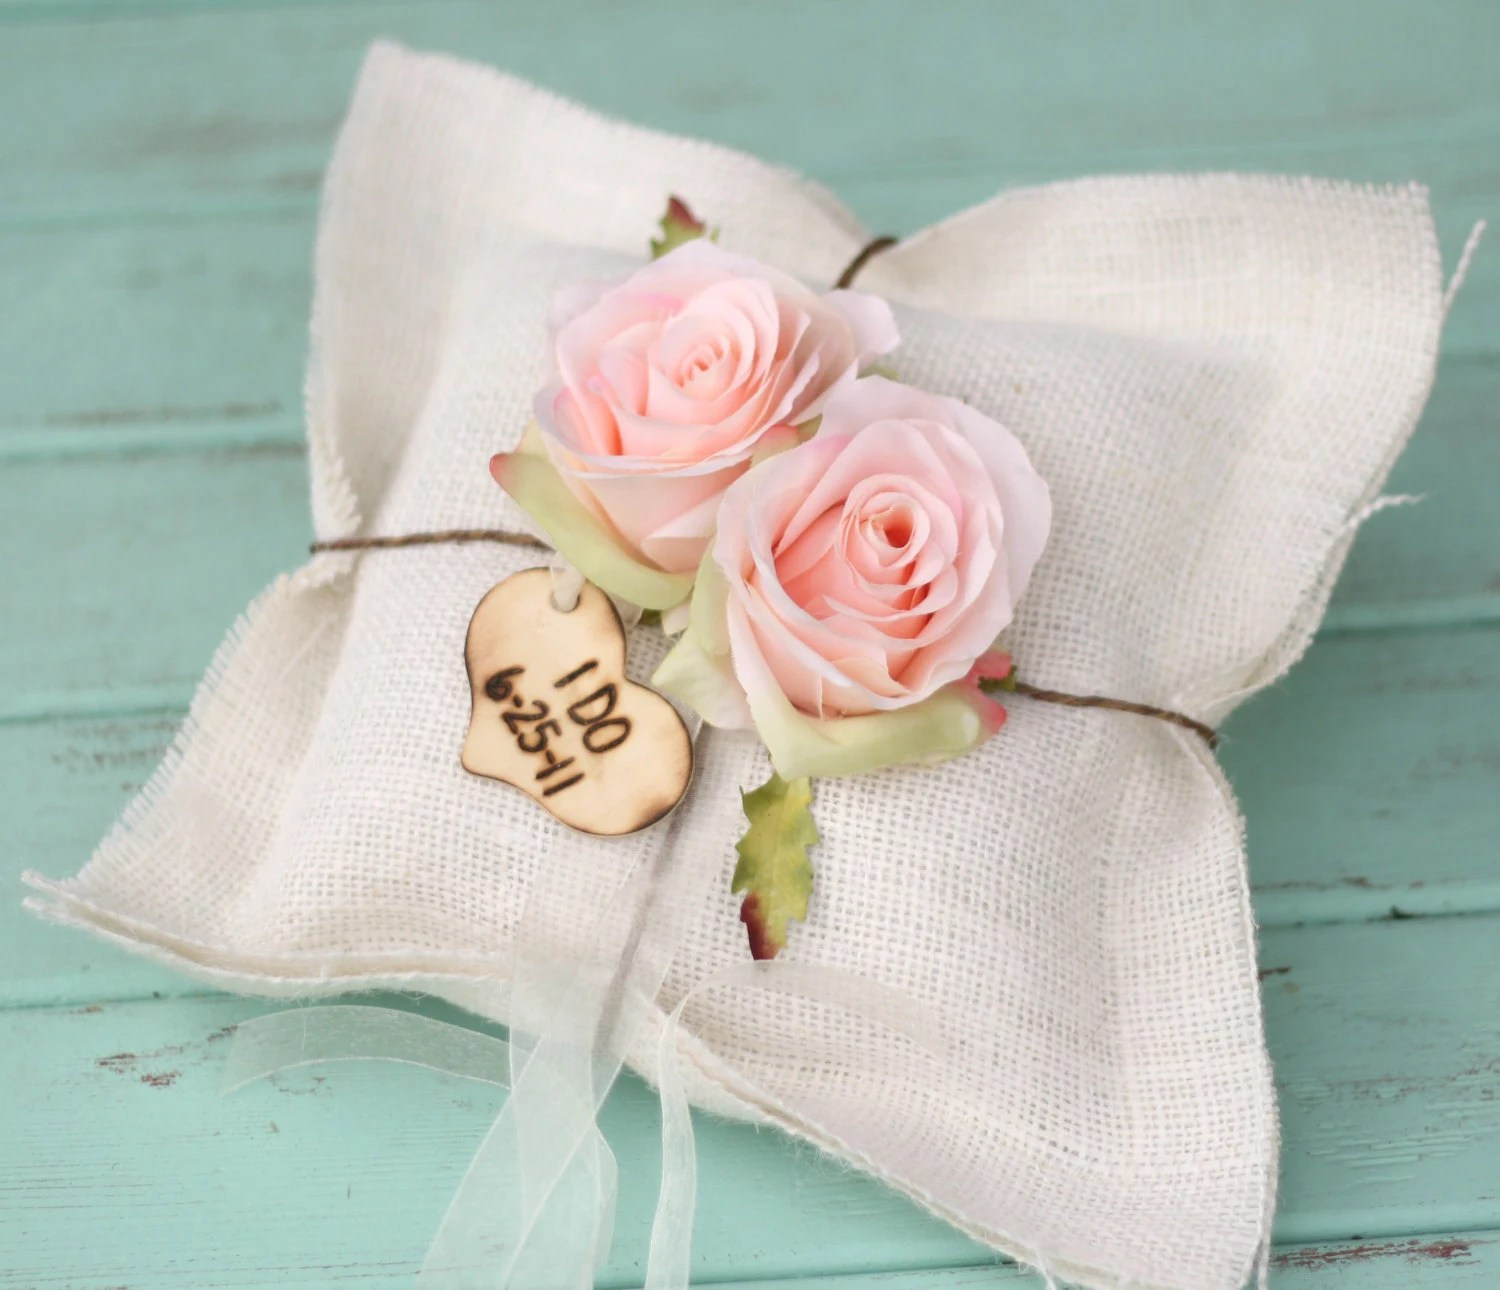 Rustic Ring Bearer Pillow Personalized Engraved Wood Heart Charm Shabby Chic Burlap - braggingbags